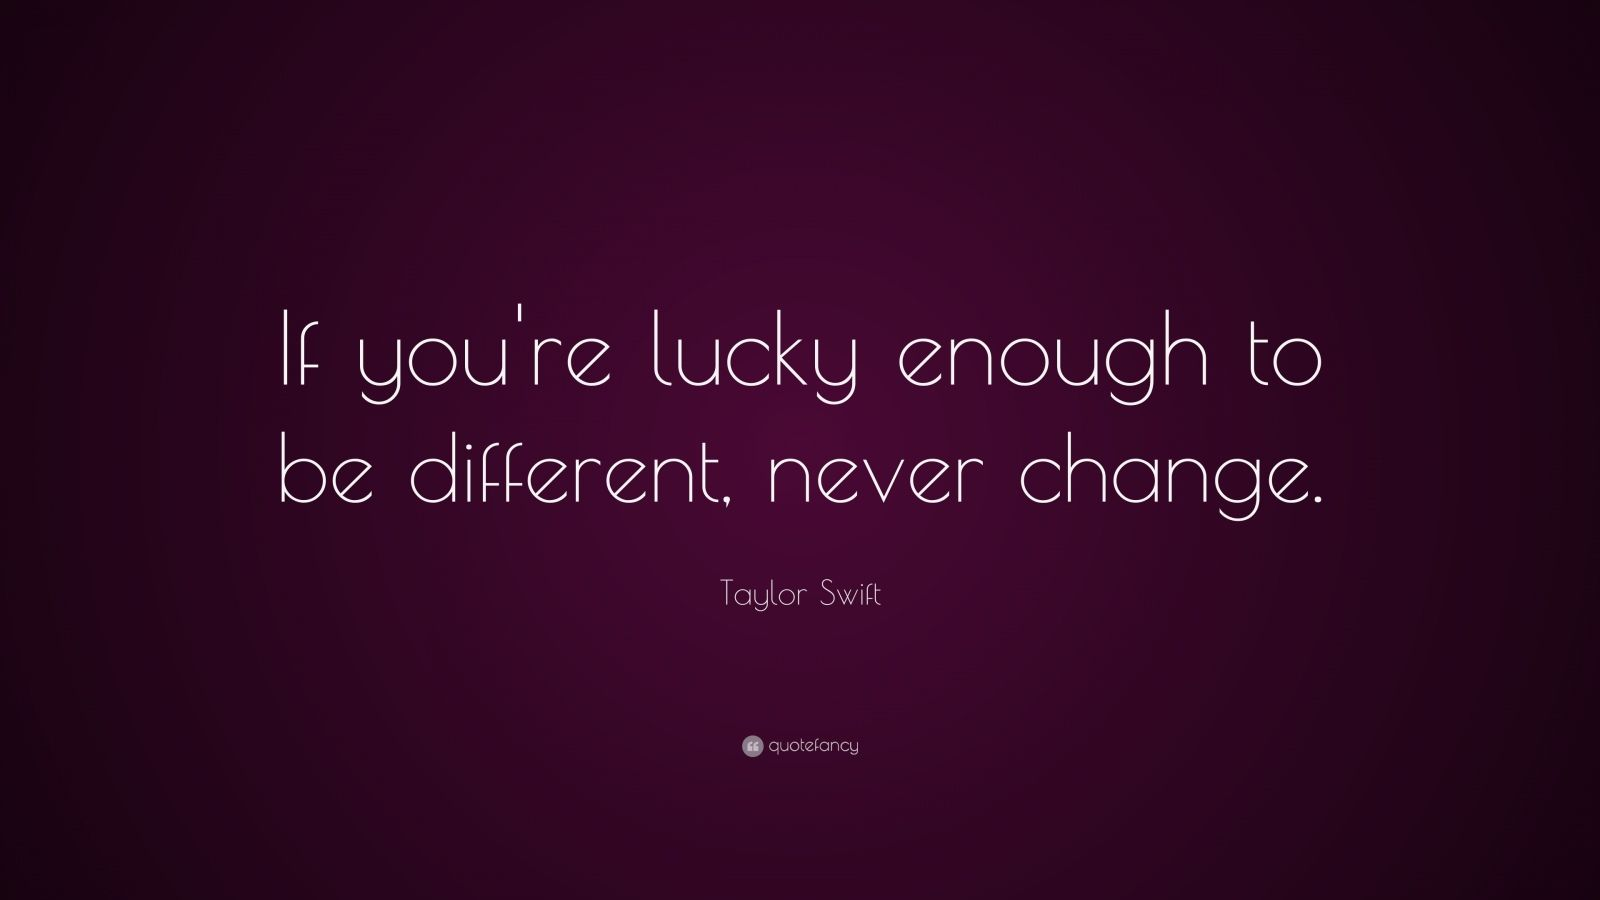 Kurt Cobain Quotes Wallpaper Taylor Swift Quote If You Re Lucky Enough To Be